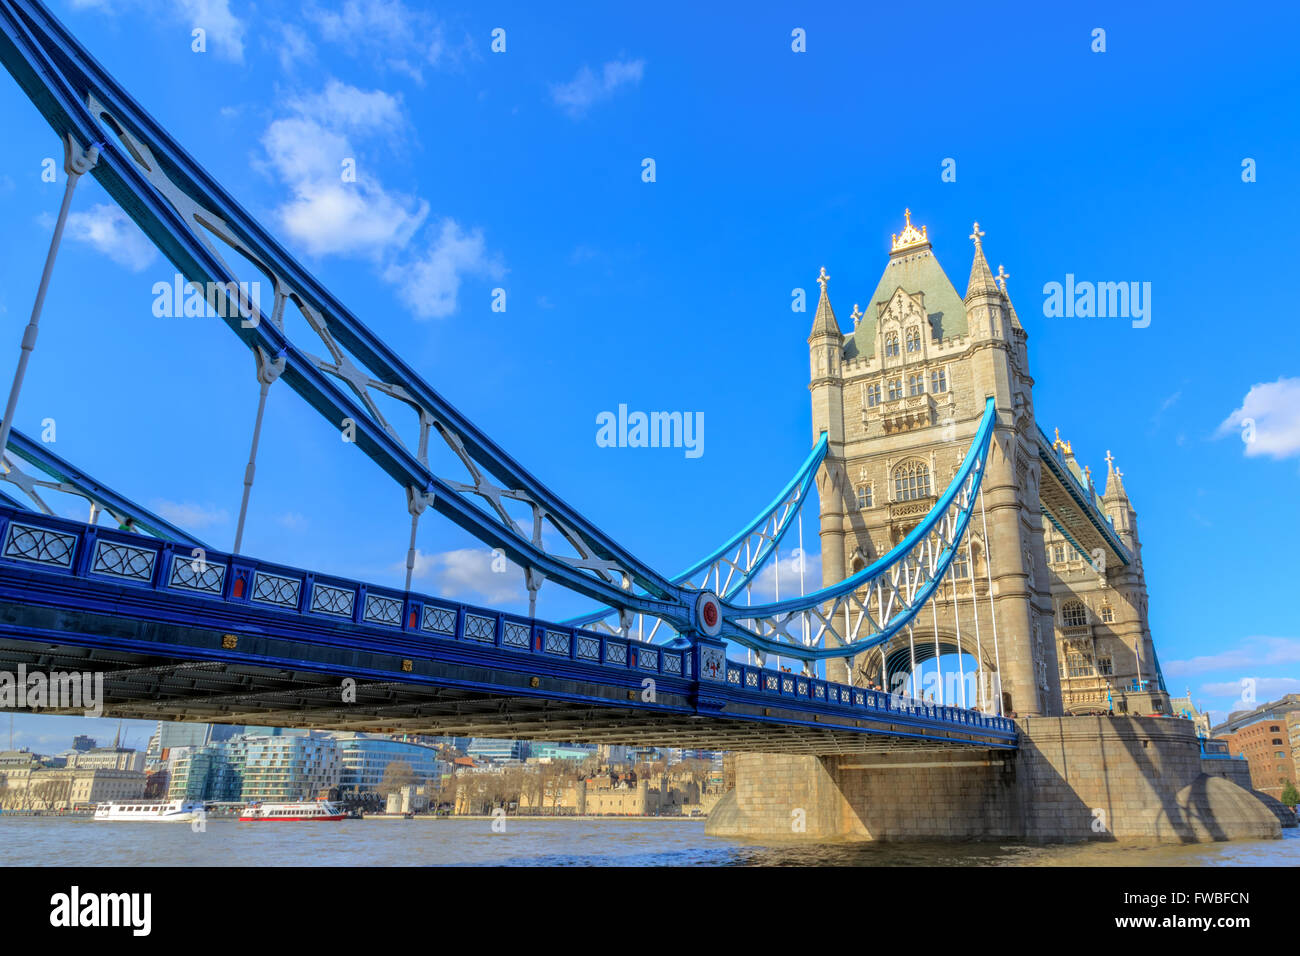 London Tower Bridge and River Thames from the north bank at day in the United Kingdom - Stock Image